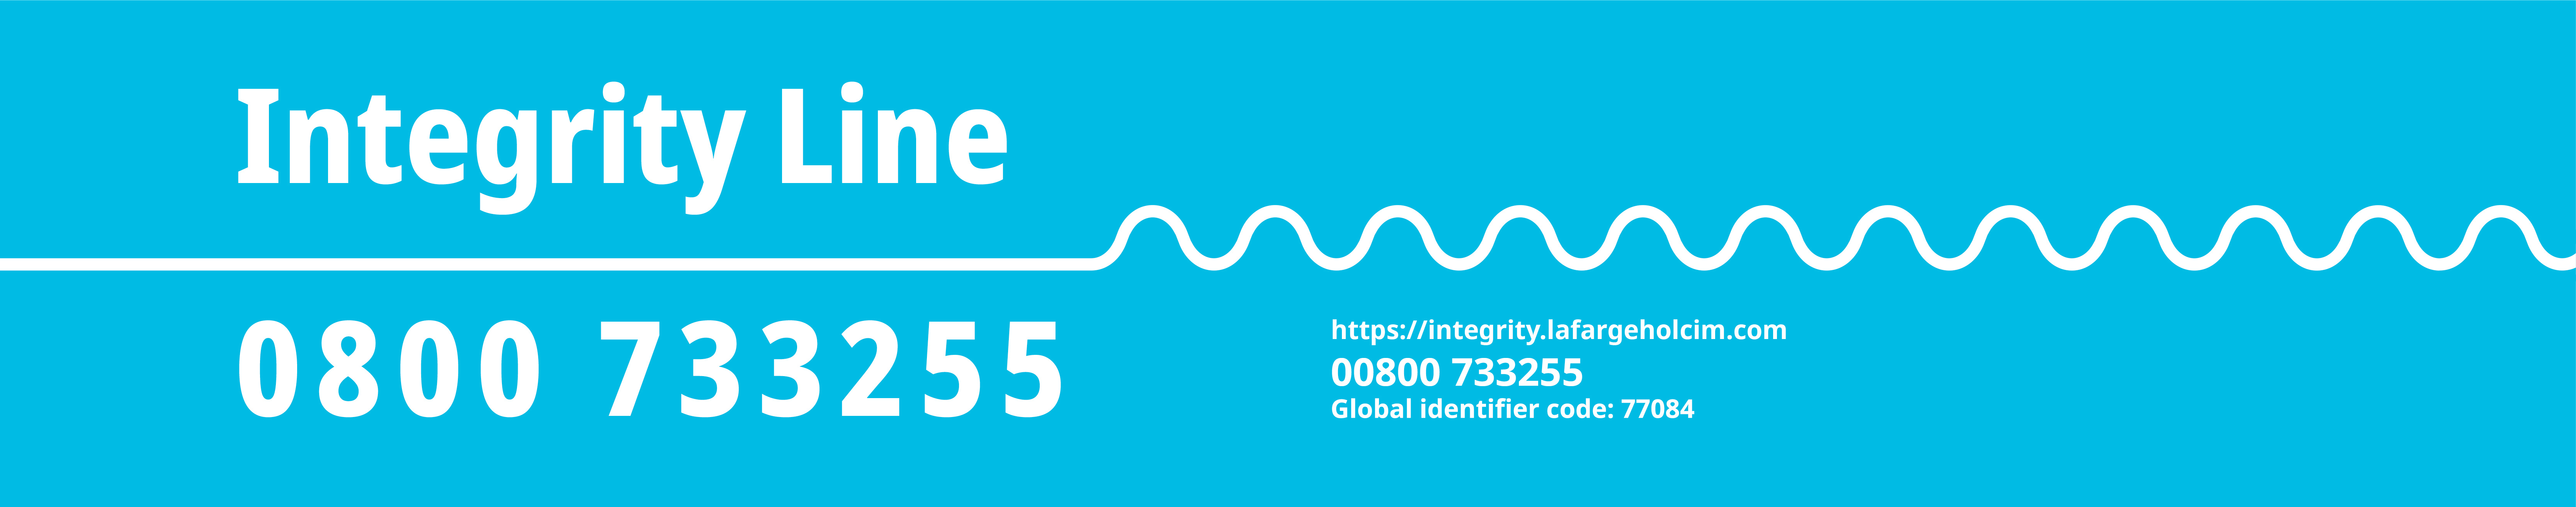 new integrity line header banner 1600x315px aw 01